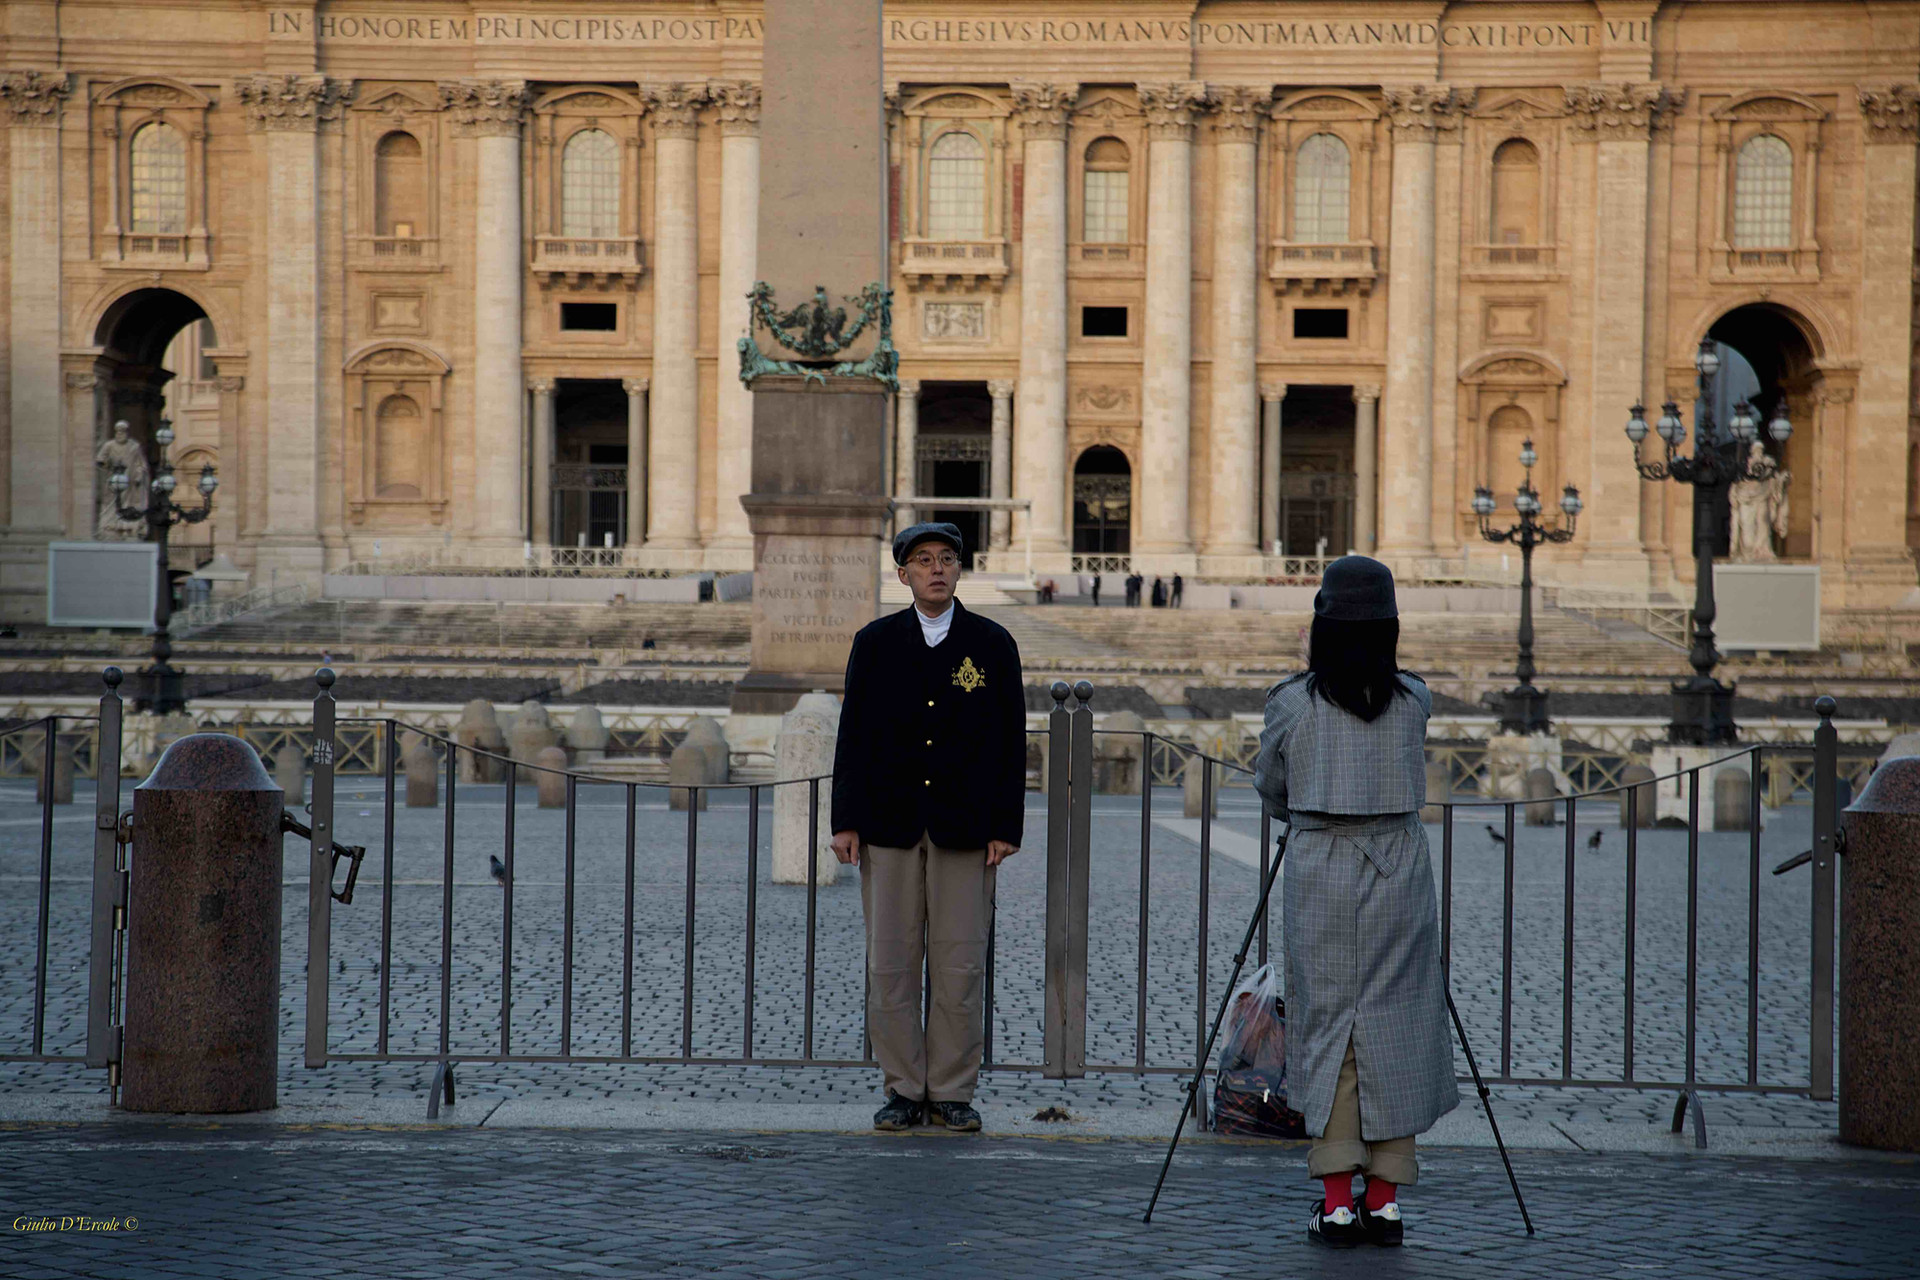 Taking photos at St. Peter's Square